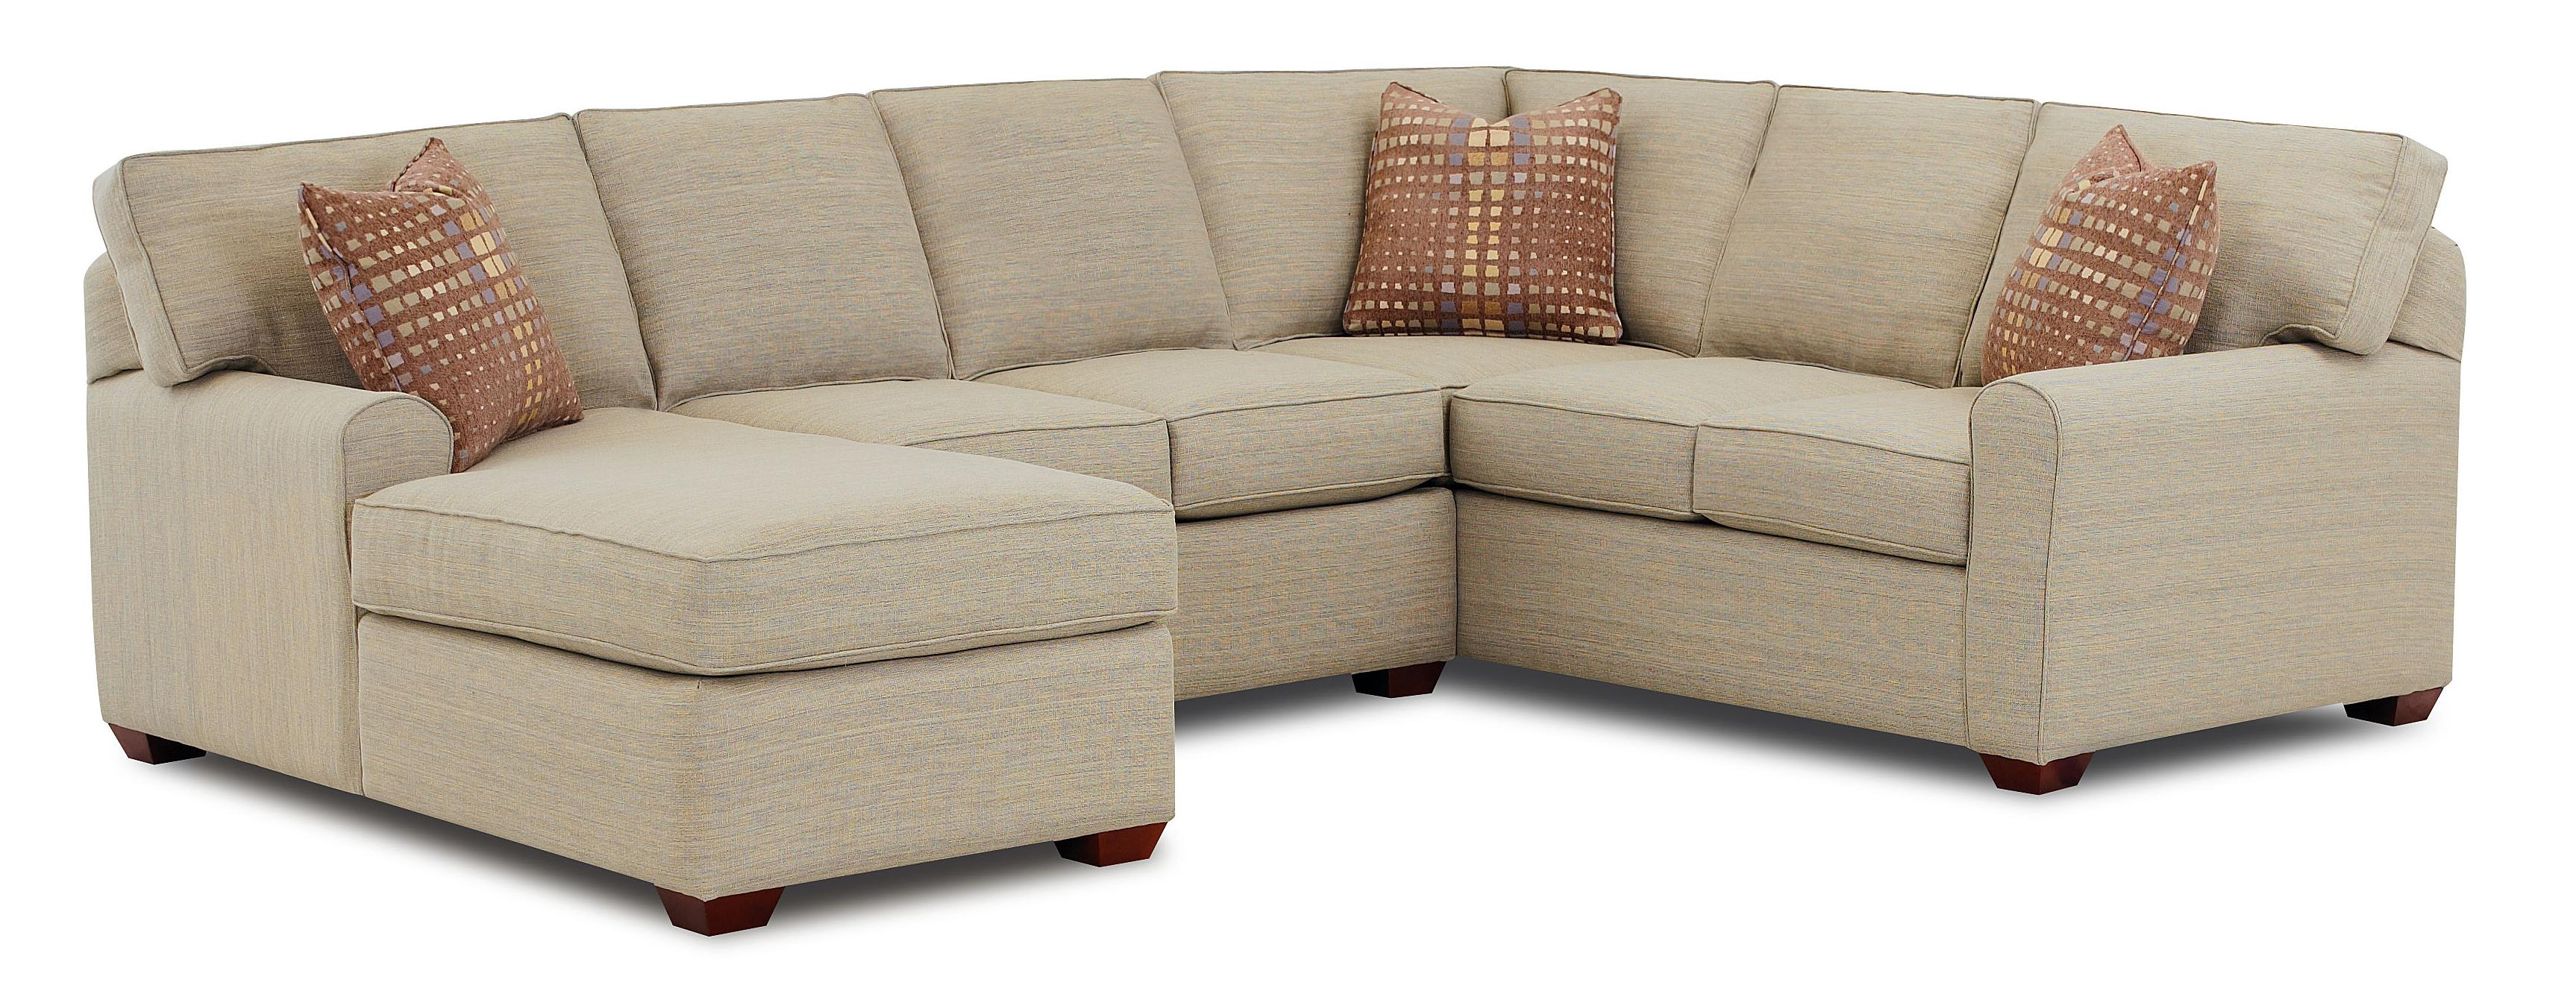 Sectional sofa with left facing chaise lounge for Sectional sofa bed with chaise lounge